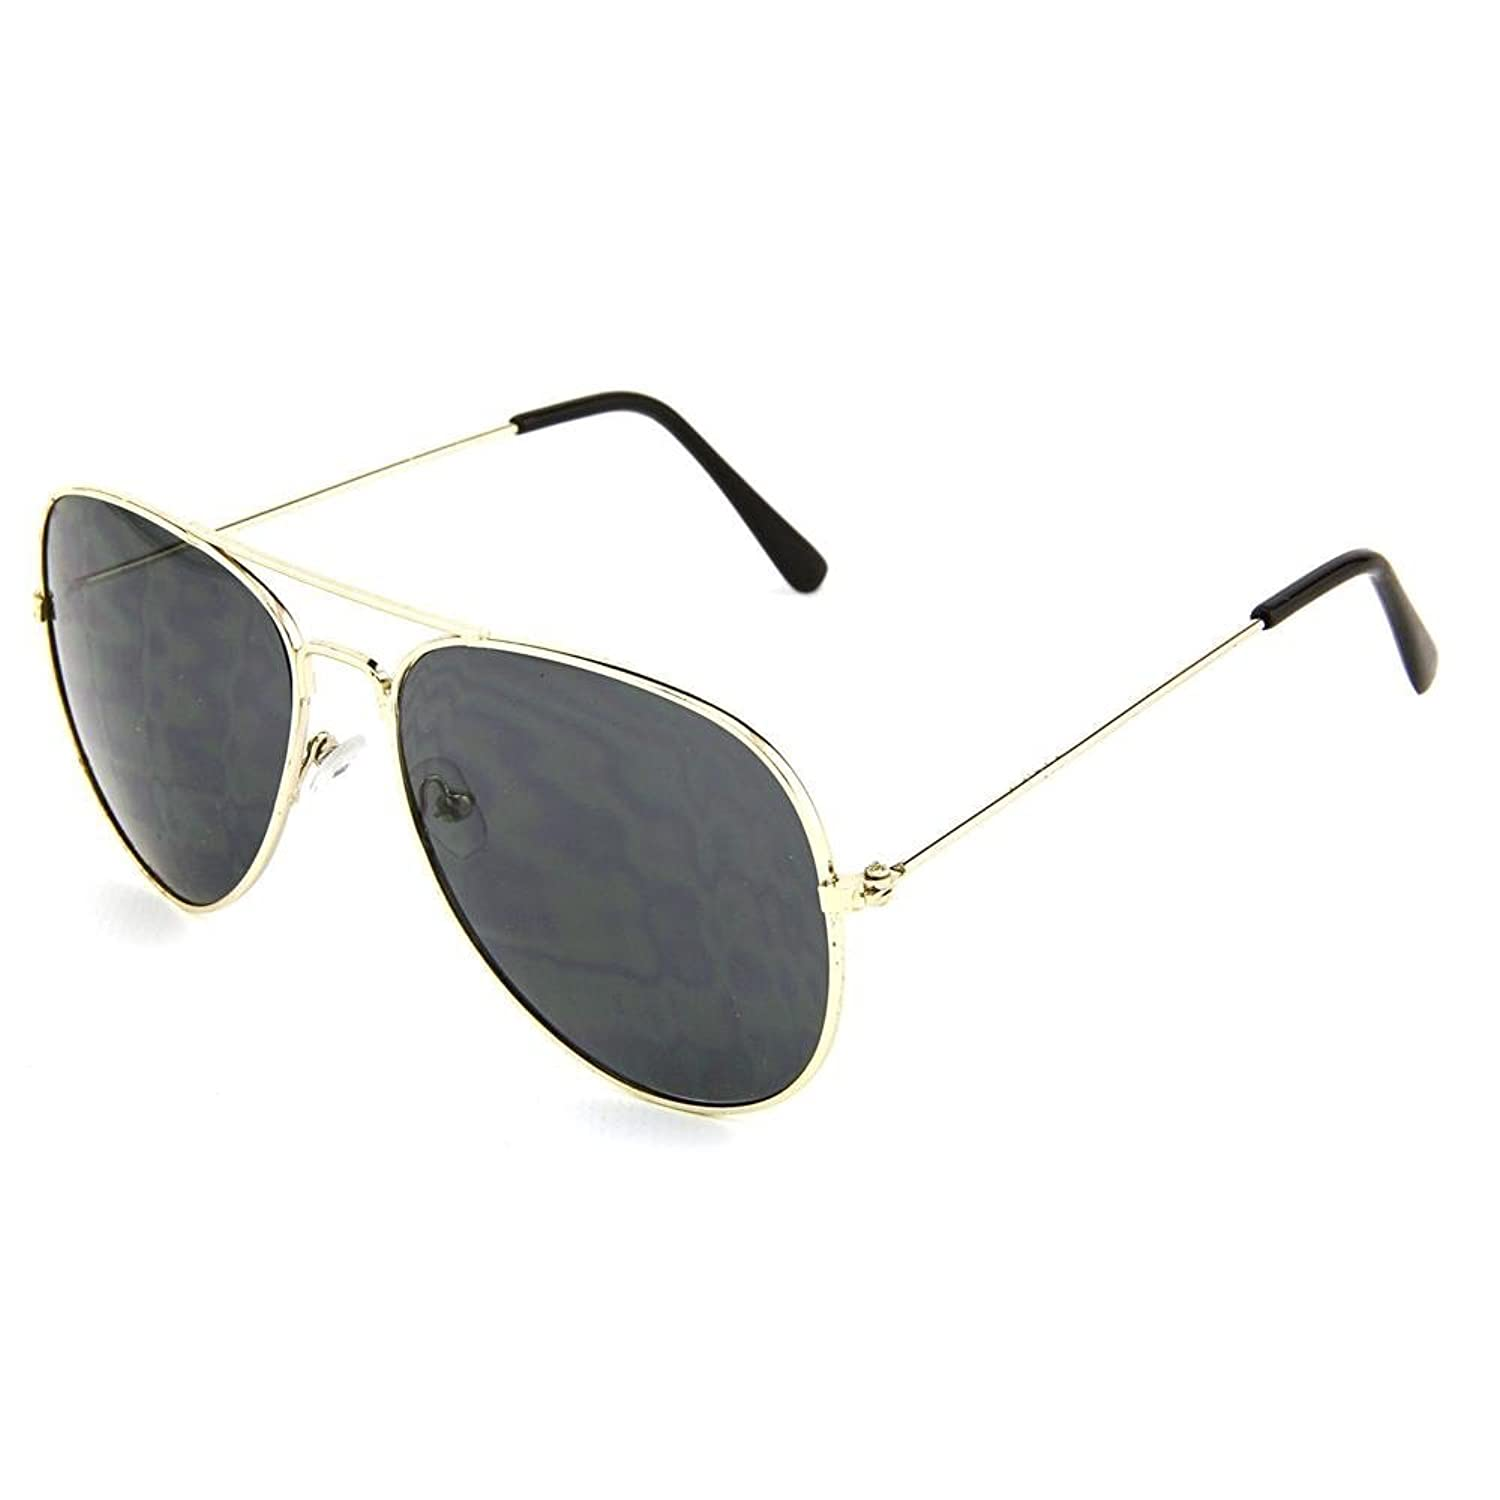 Aviator Sunglasses Reminiscent Of The 70\u0027s Style Metal Frame